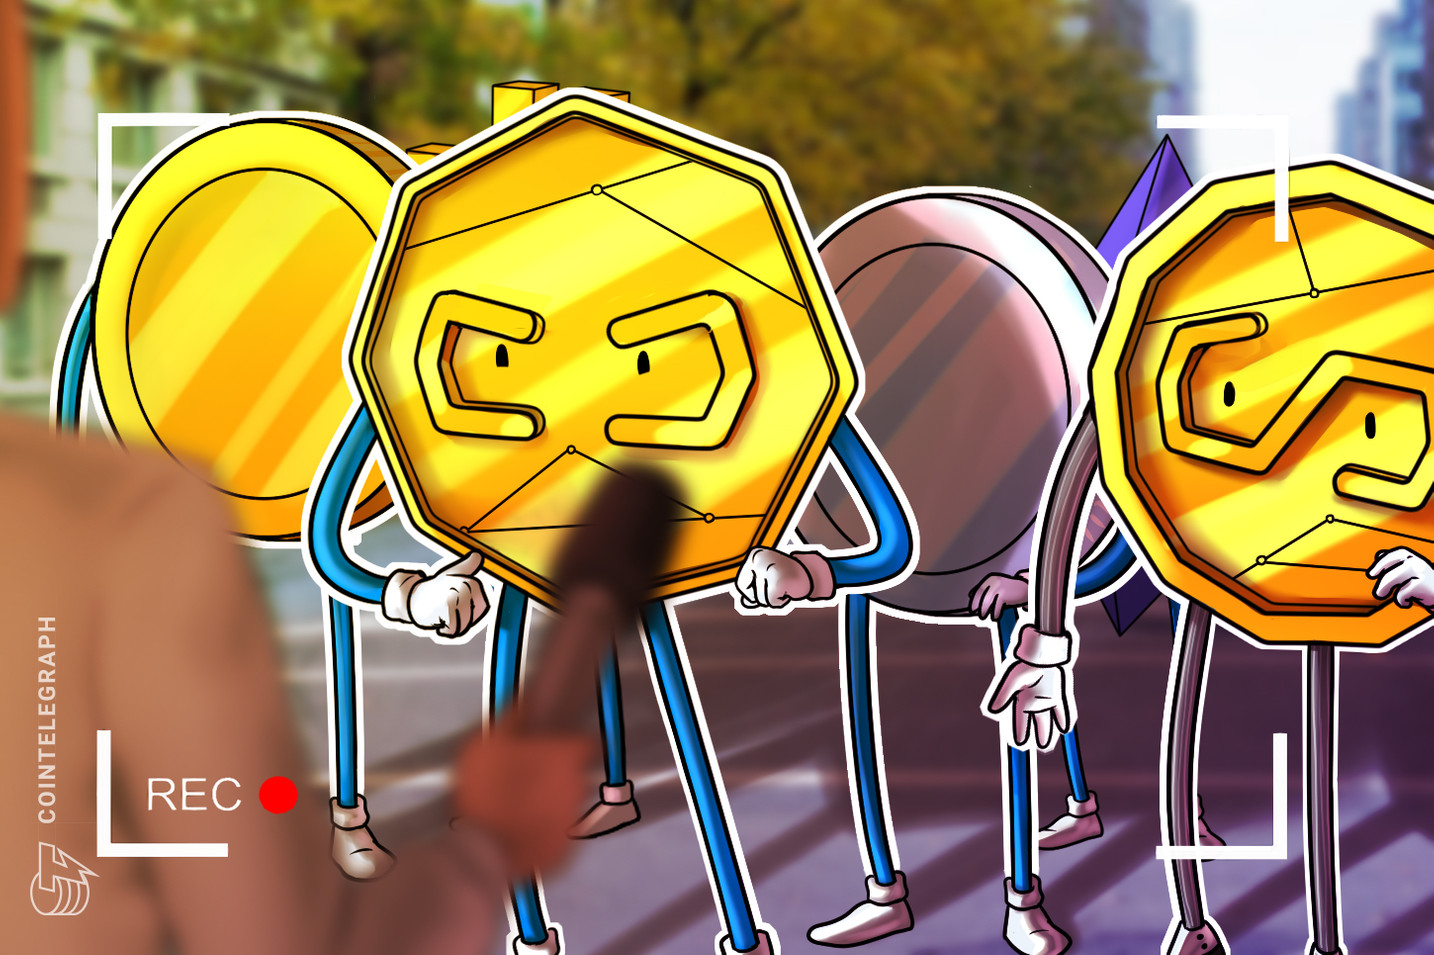 Gold smuggler's gait gives him away as PayPal launches price action moon mission: Bad crypto news of the week